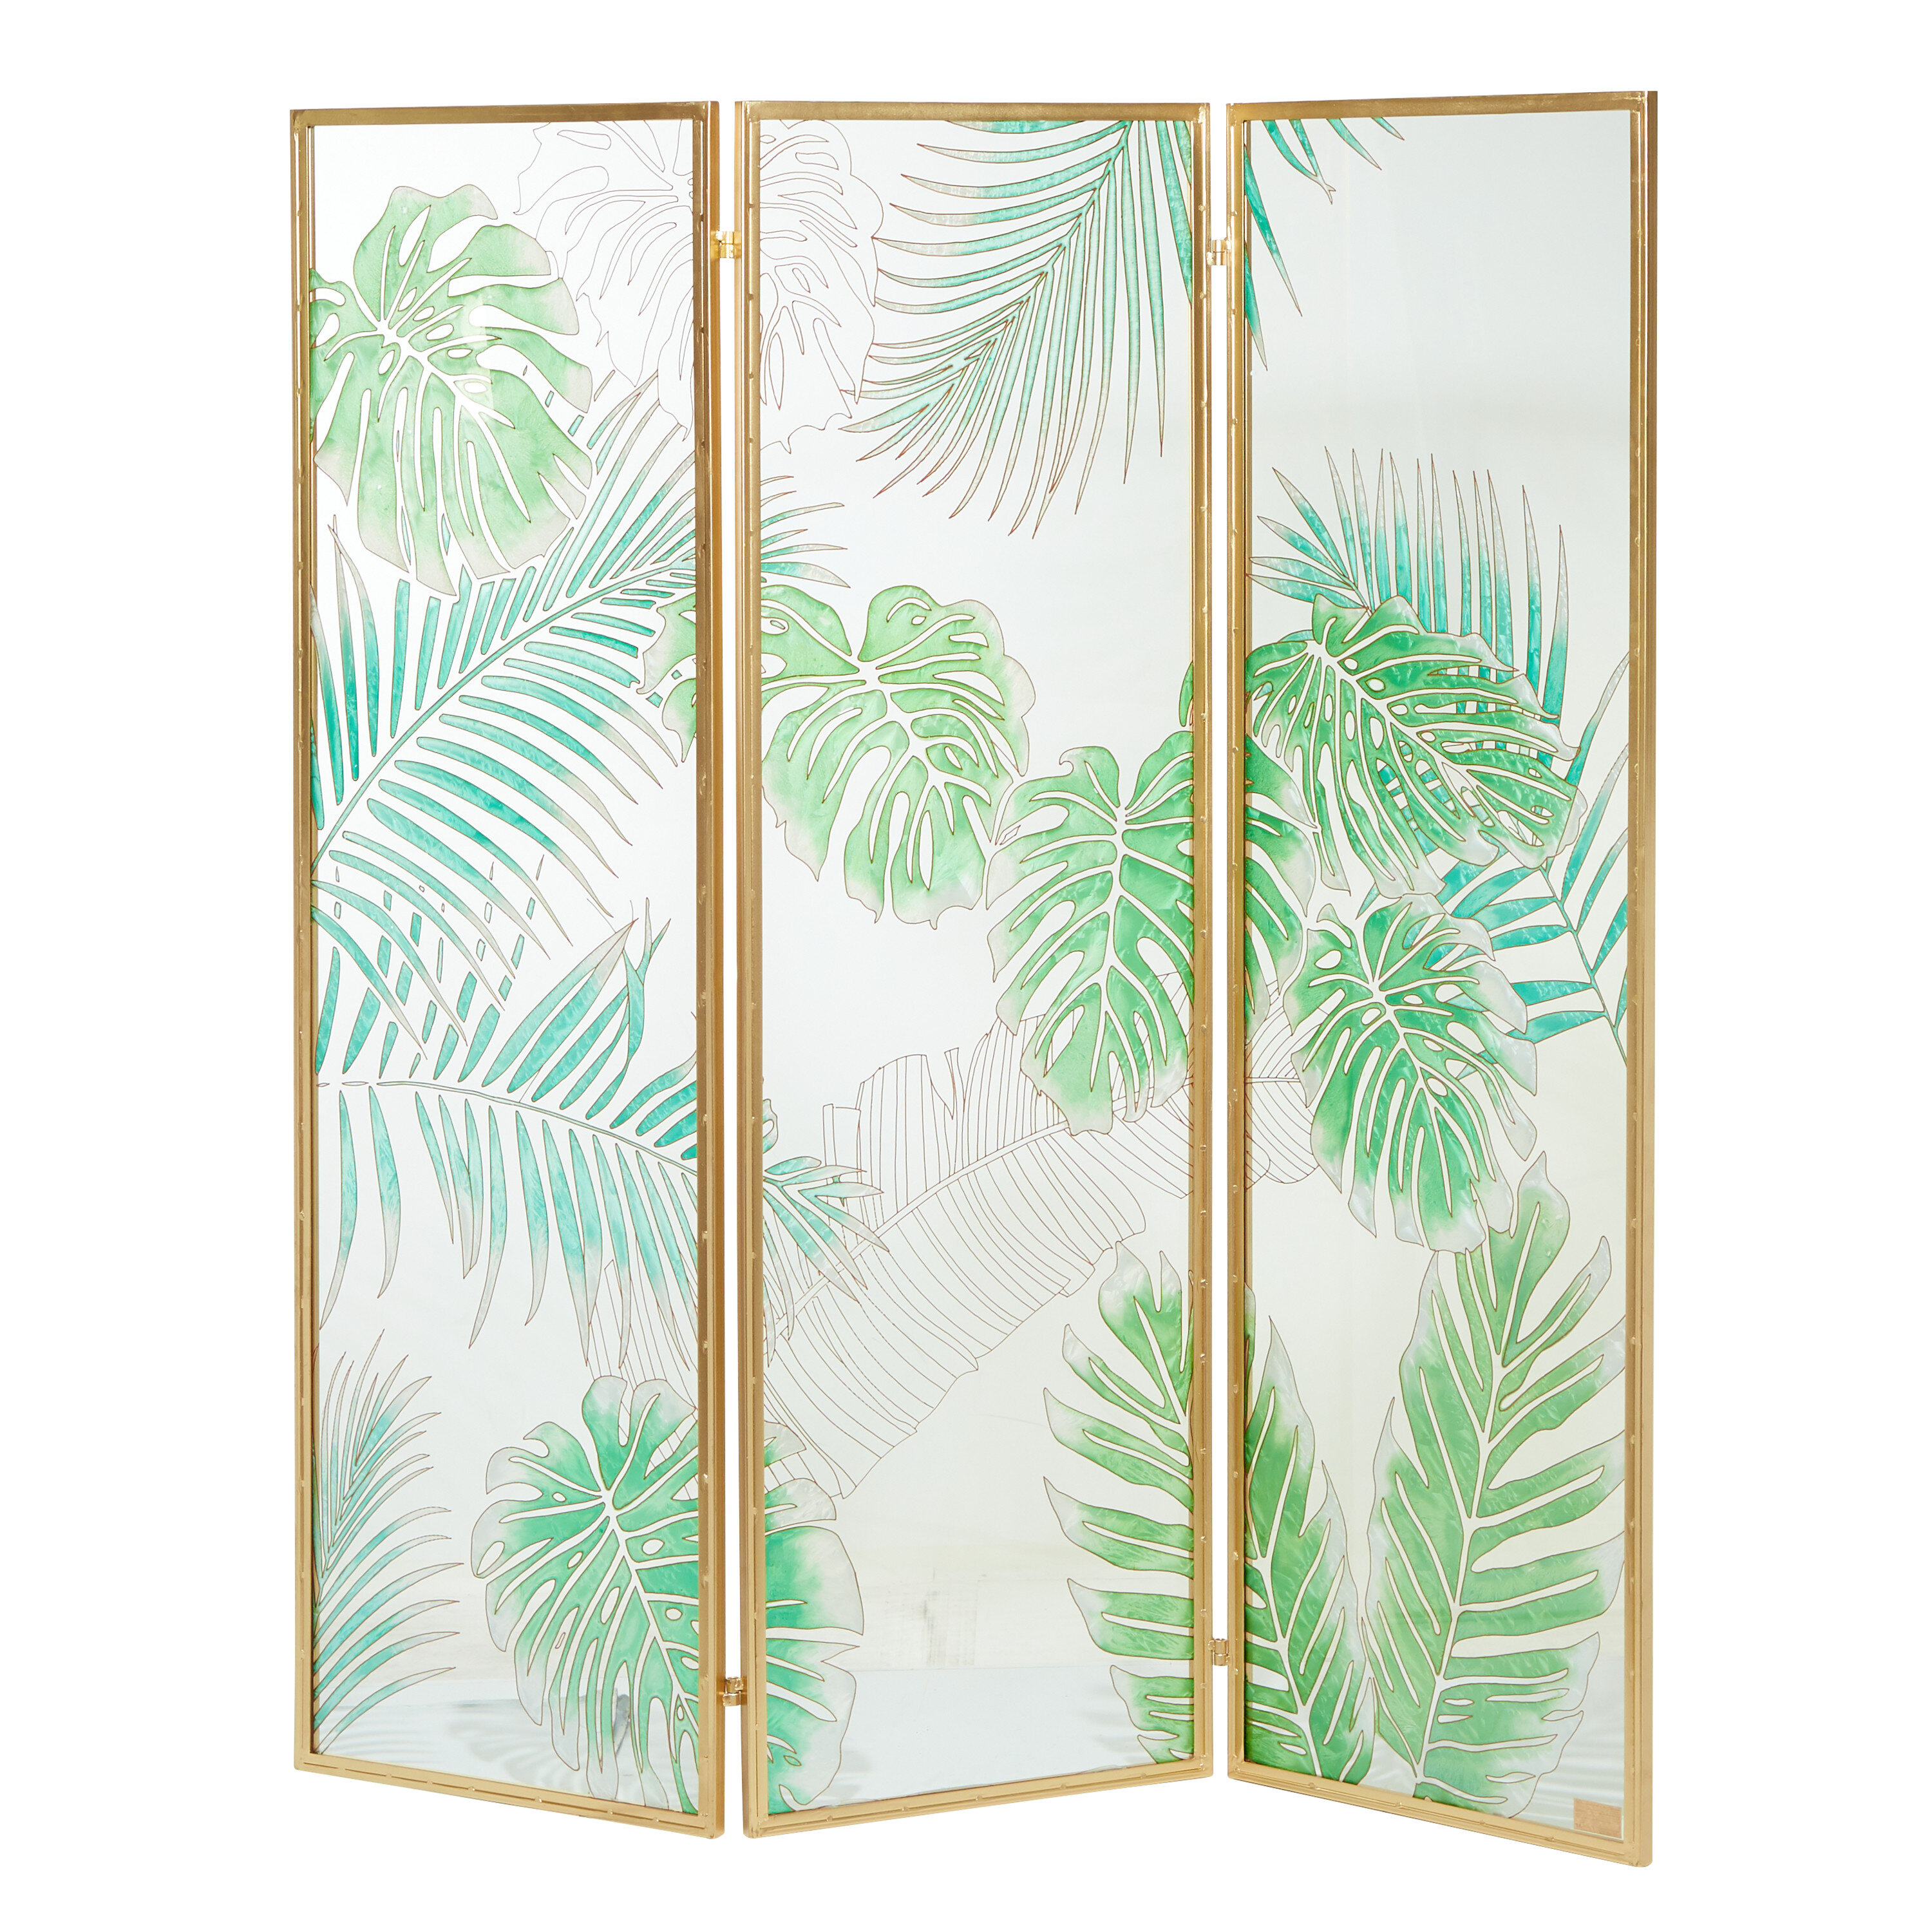 Bayou Breeze Anacortes 61 5 W X 72 5 H 3 Panel Solid Wood Folding Room Divider Wayfair